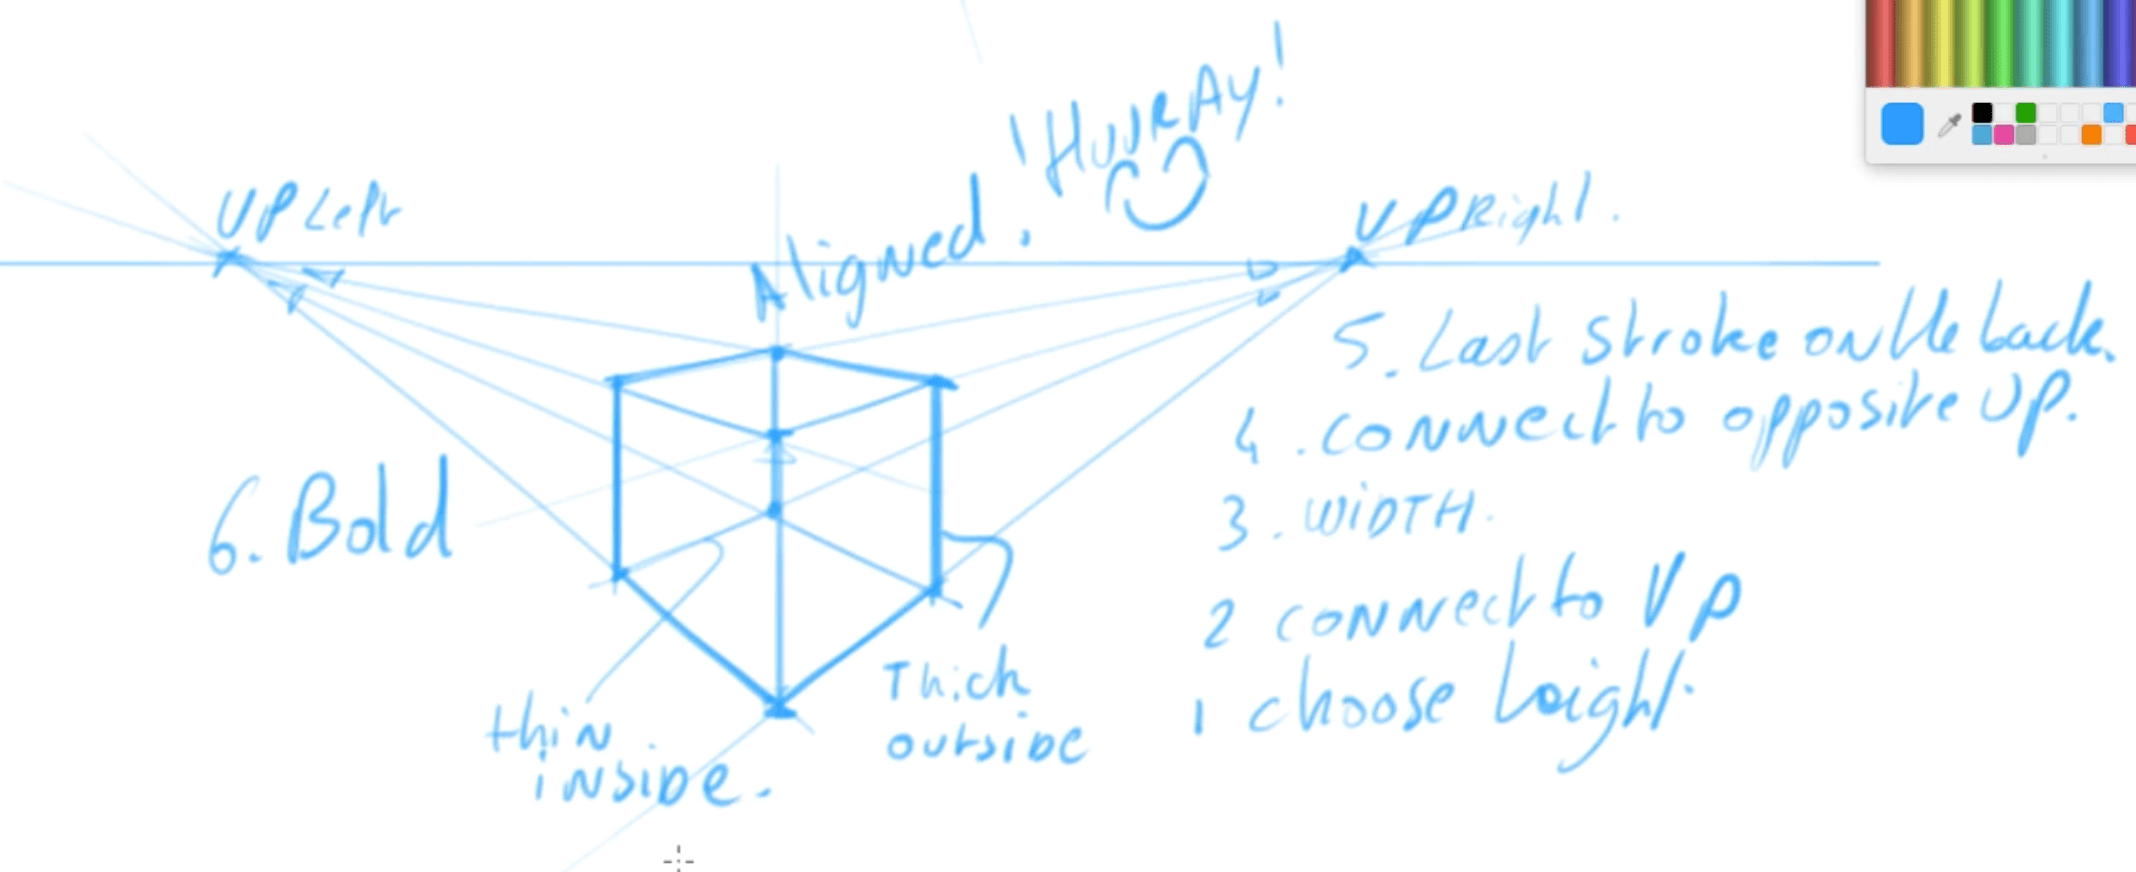 How to draw basic 3d volumes - cone - cube - cylinder - the design sketchbook - n